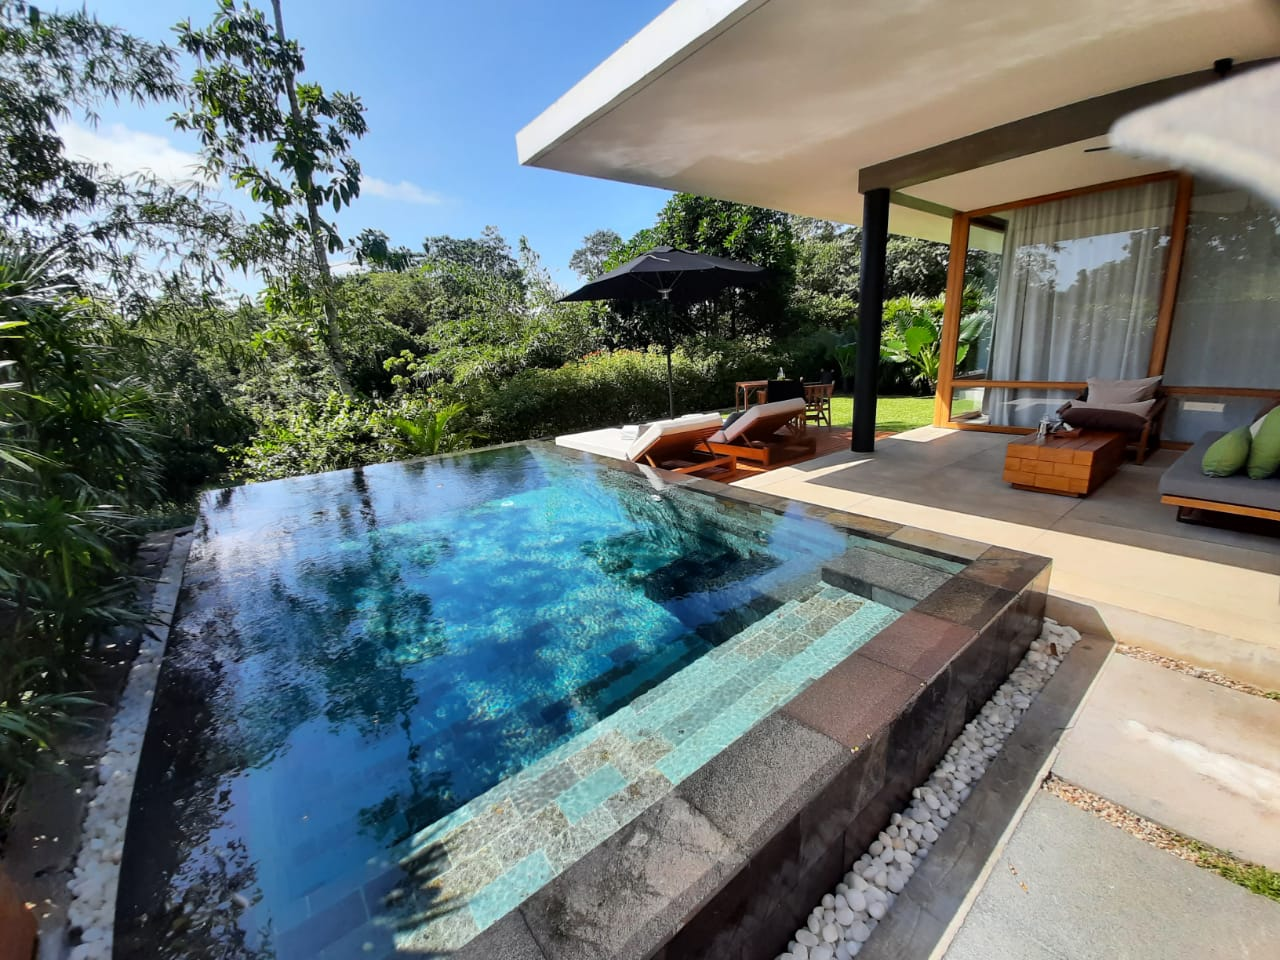 An Exclusive and Quiet Property with Forest Feels: Haritha Villas Review